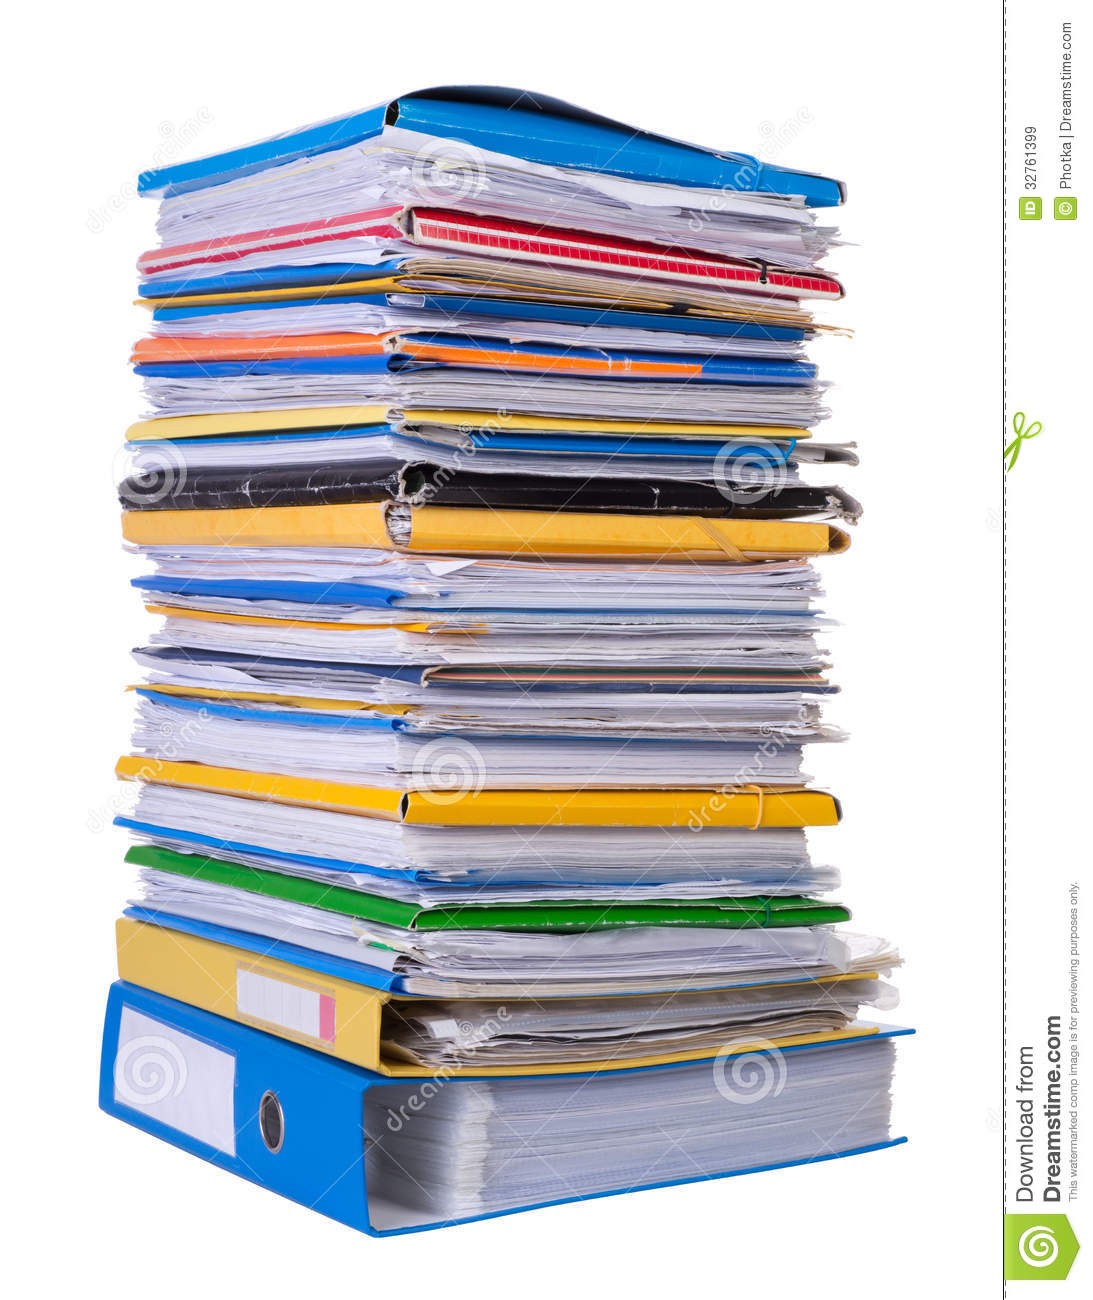 paper stack clipart - photo #31